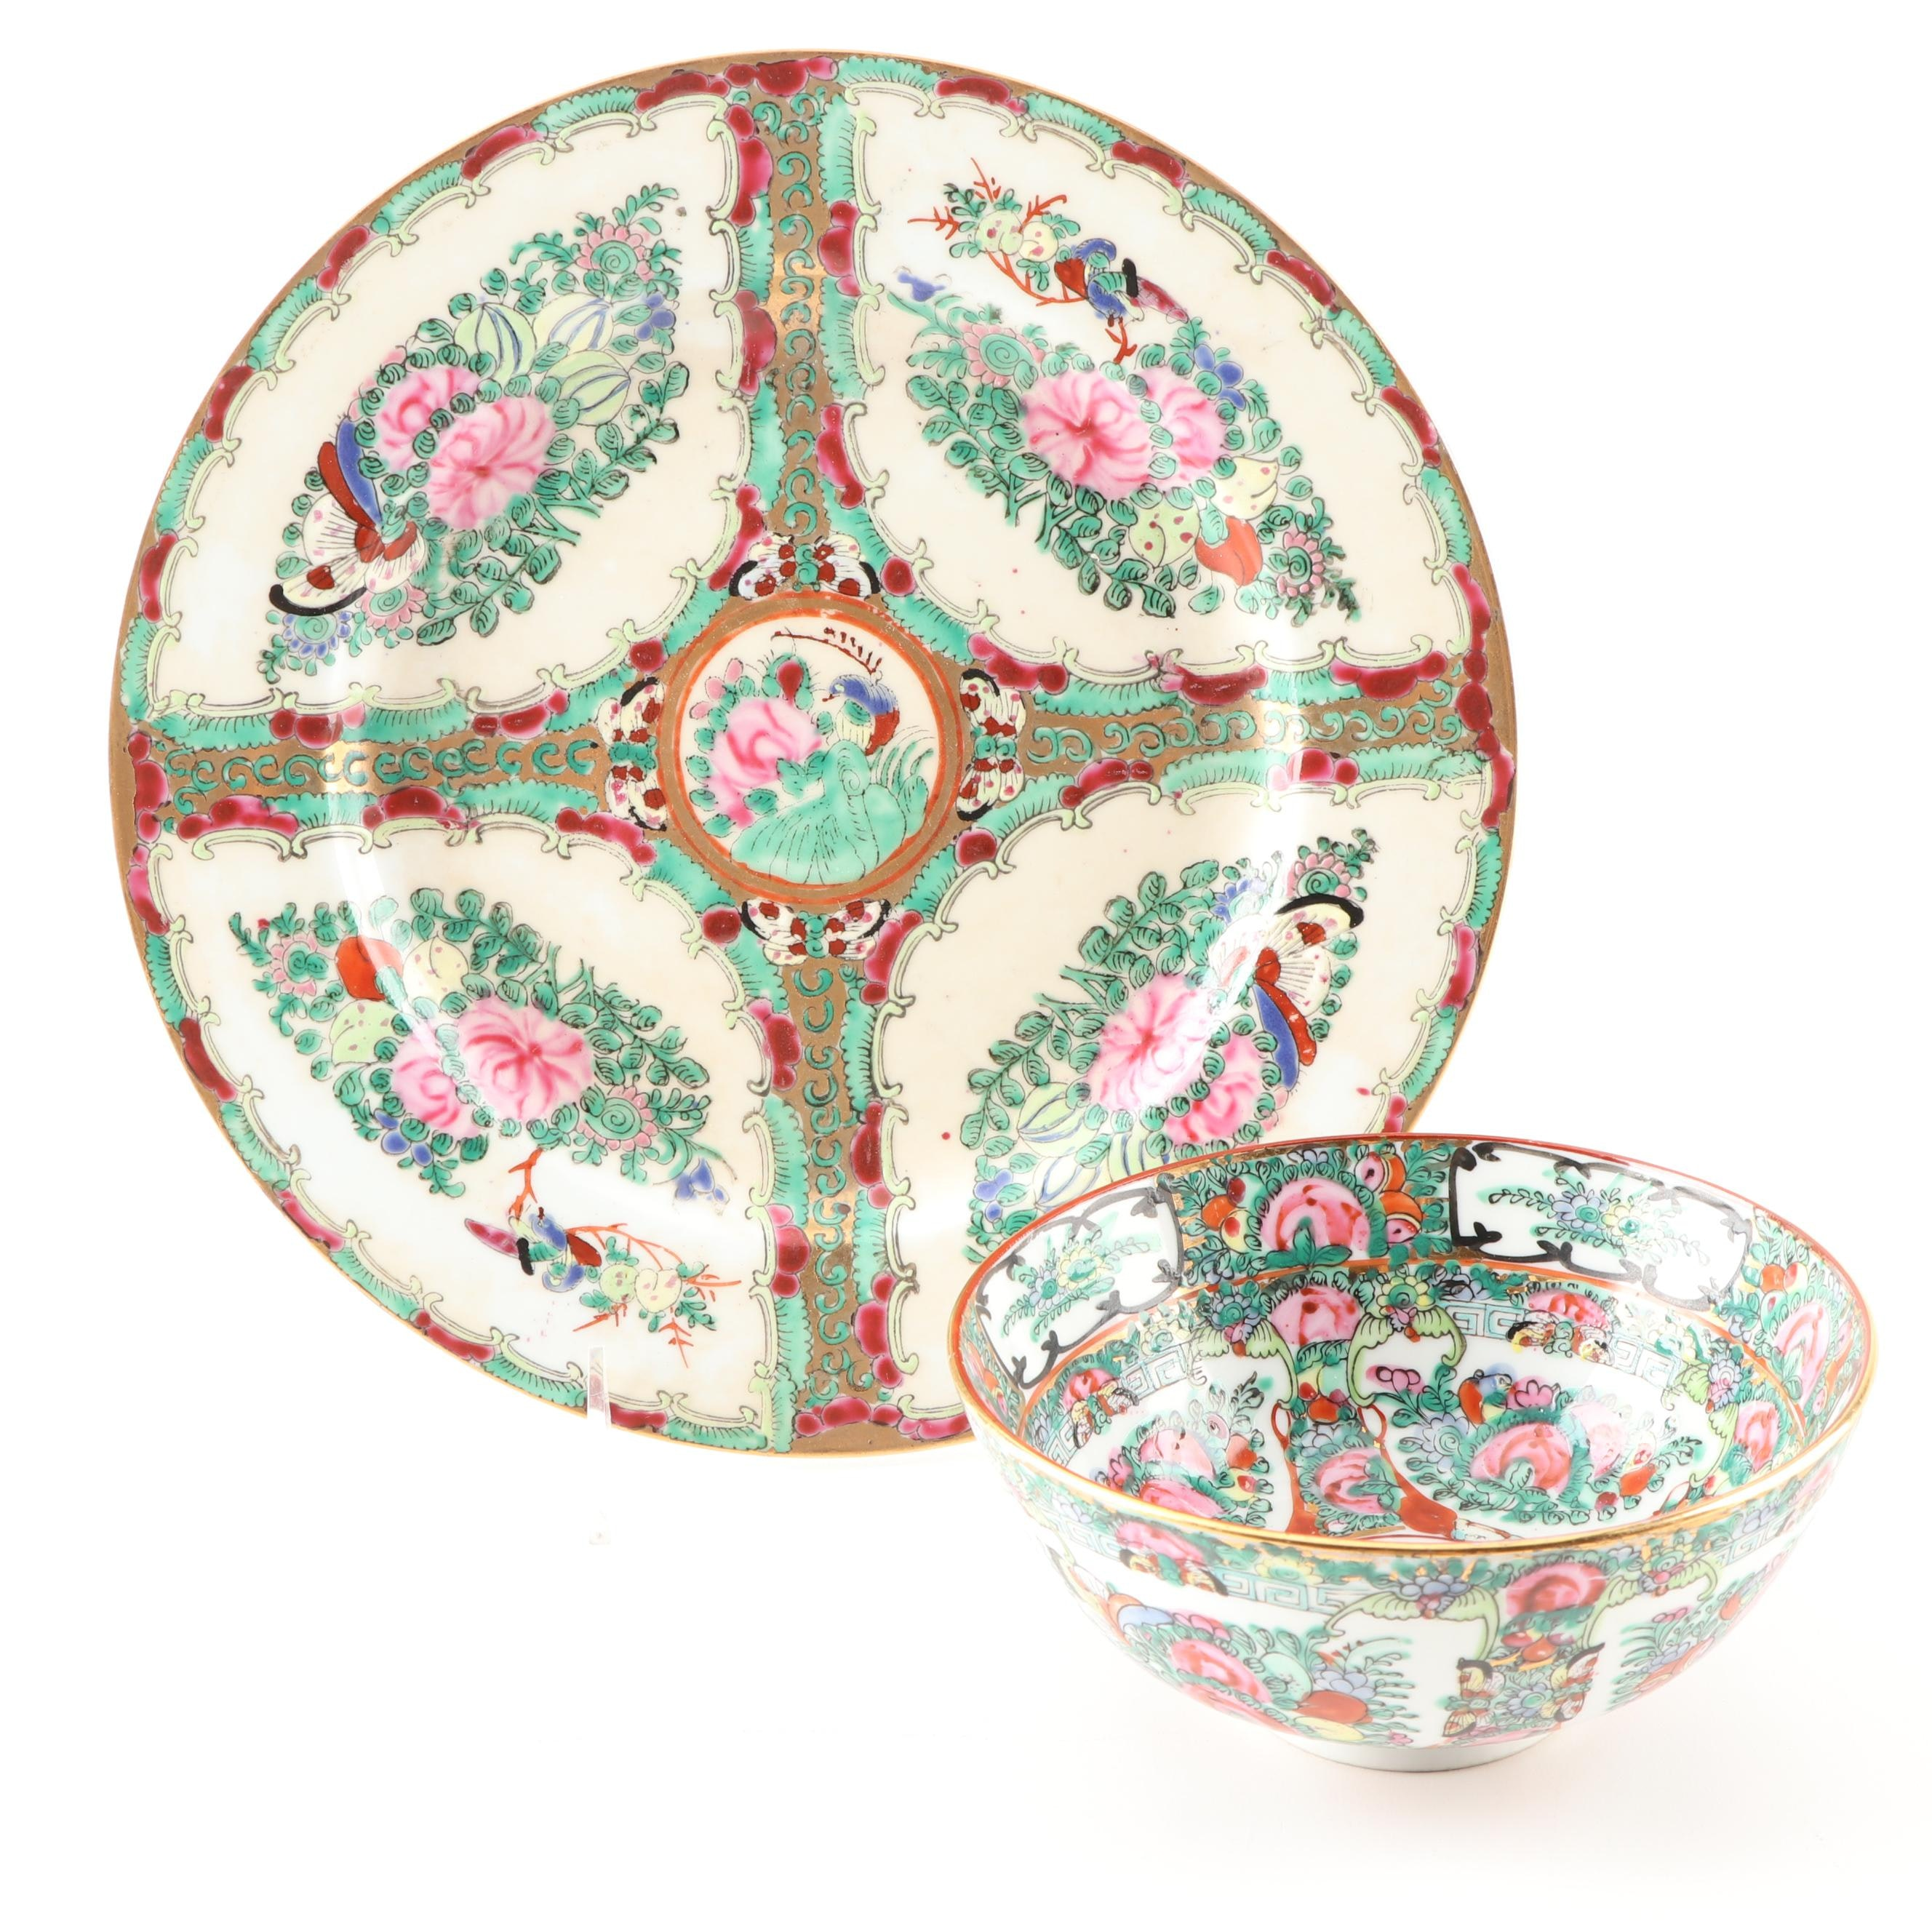 Japanese Hand-Painted Porcelain Plate and Bowl